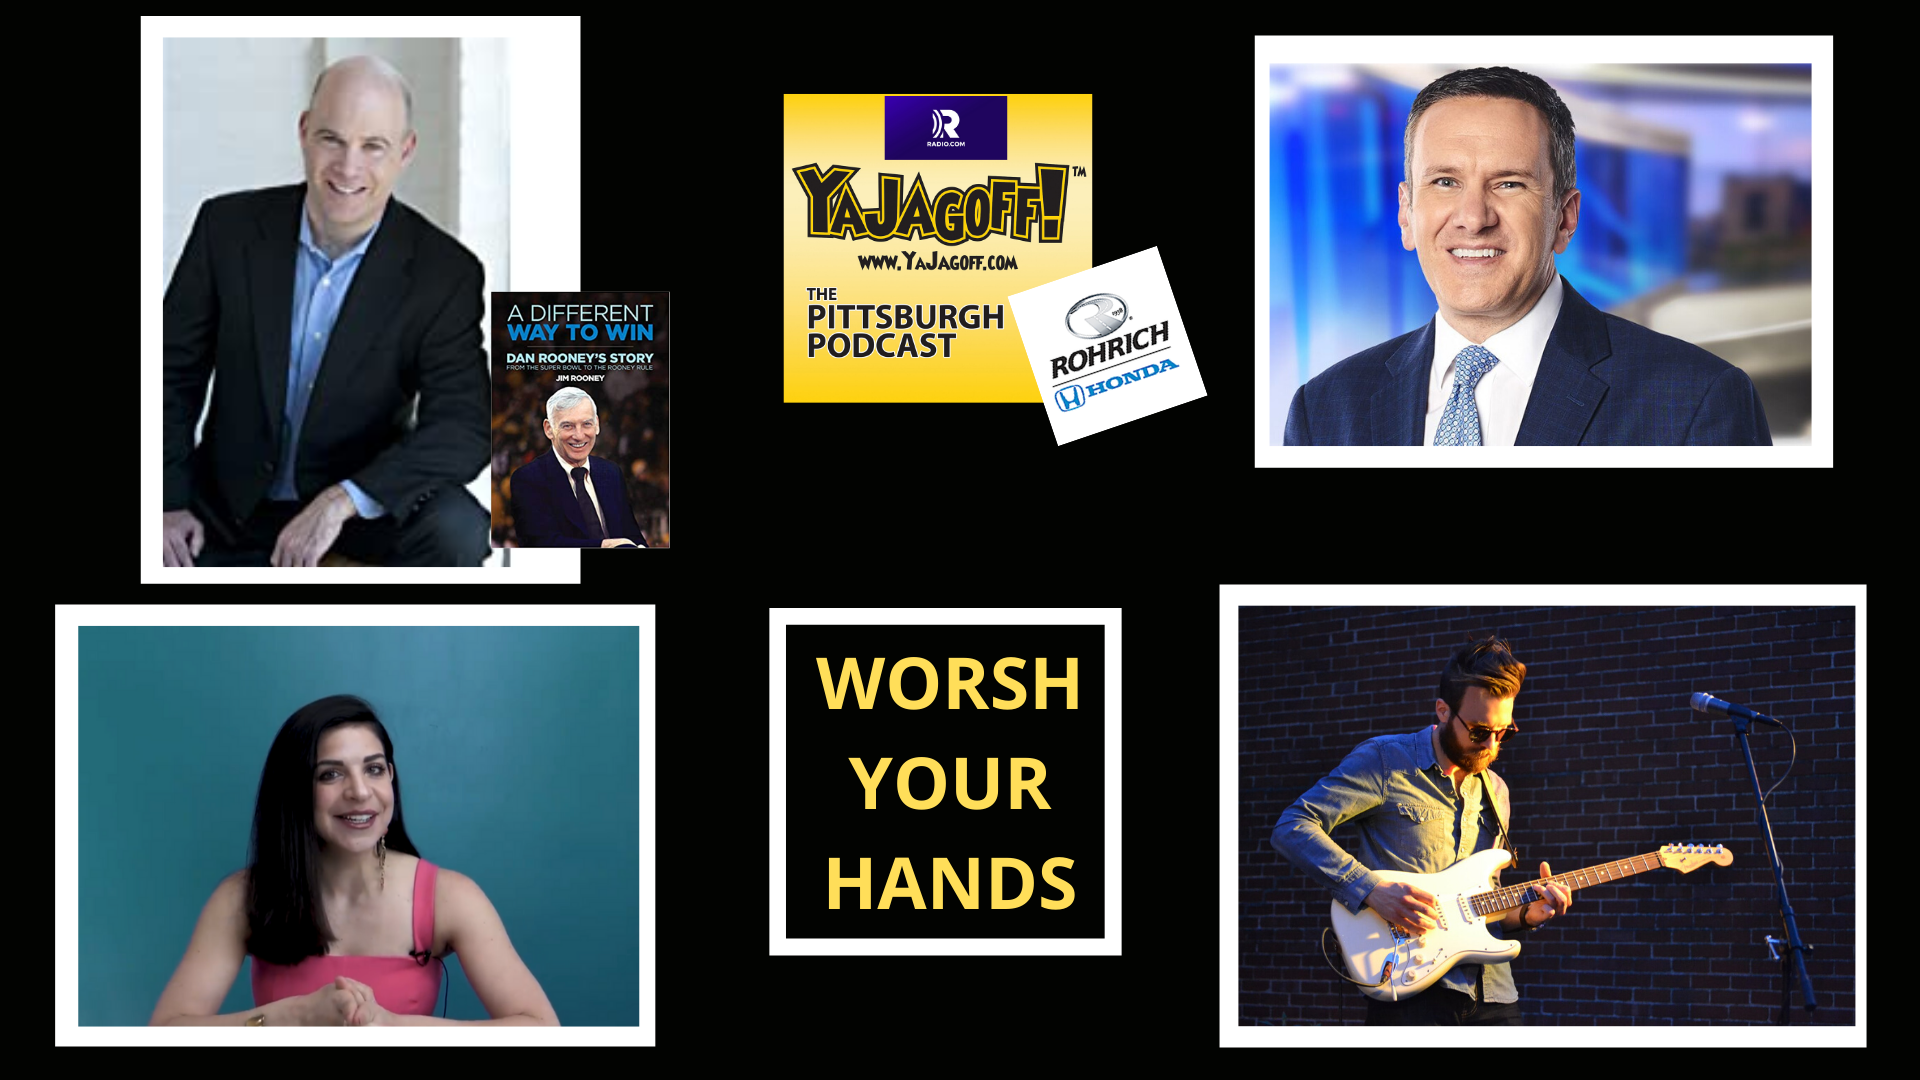 YaJagoff Podcast Collage, Jim Rooney